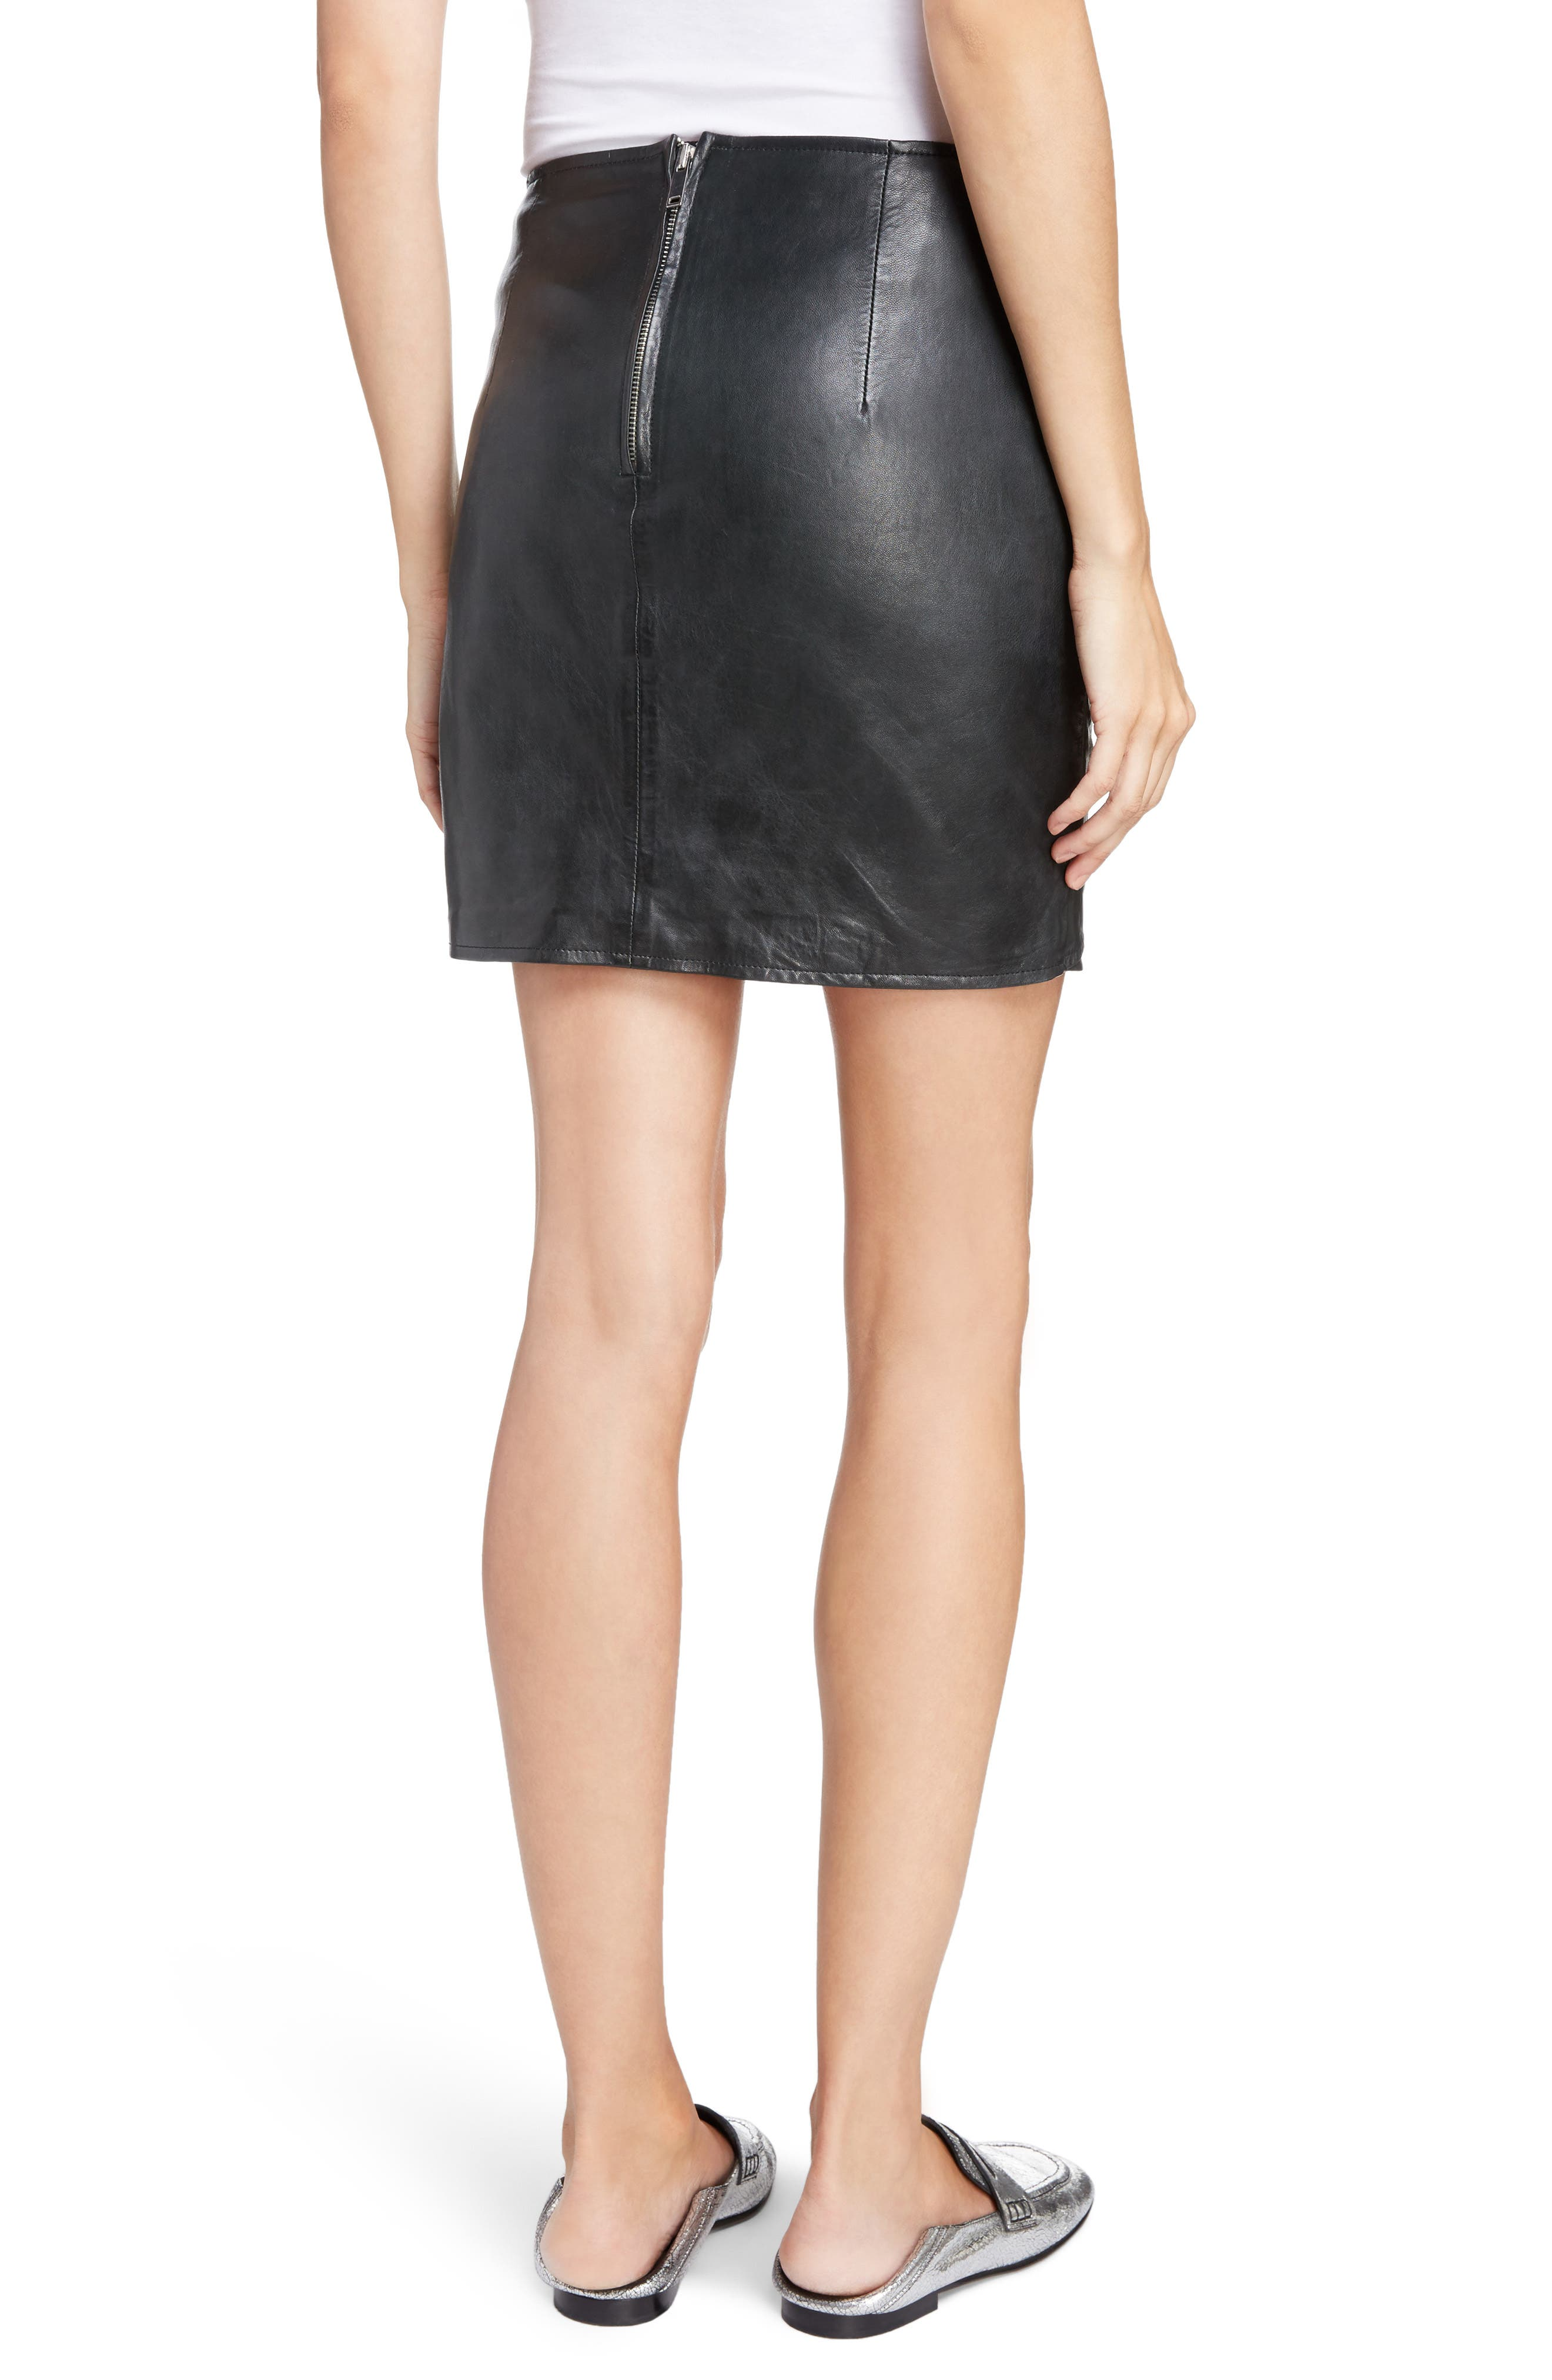 Isabel Marant Étoile Gritanny Tied Leather Skirt,                             Alternate thumbnail 2, color,                             Black